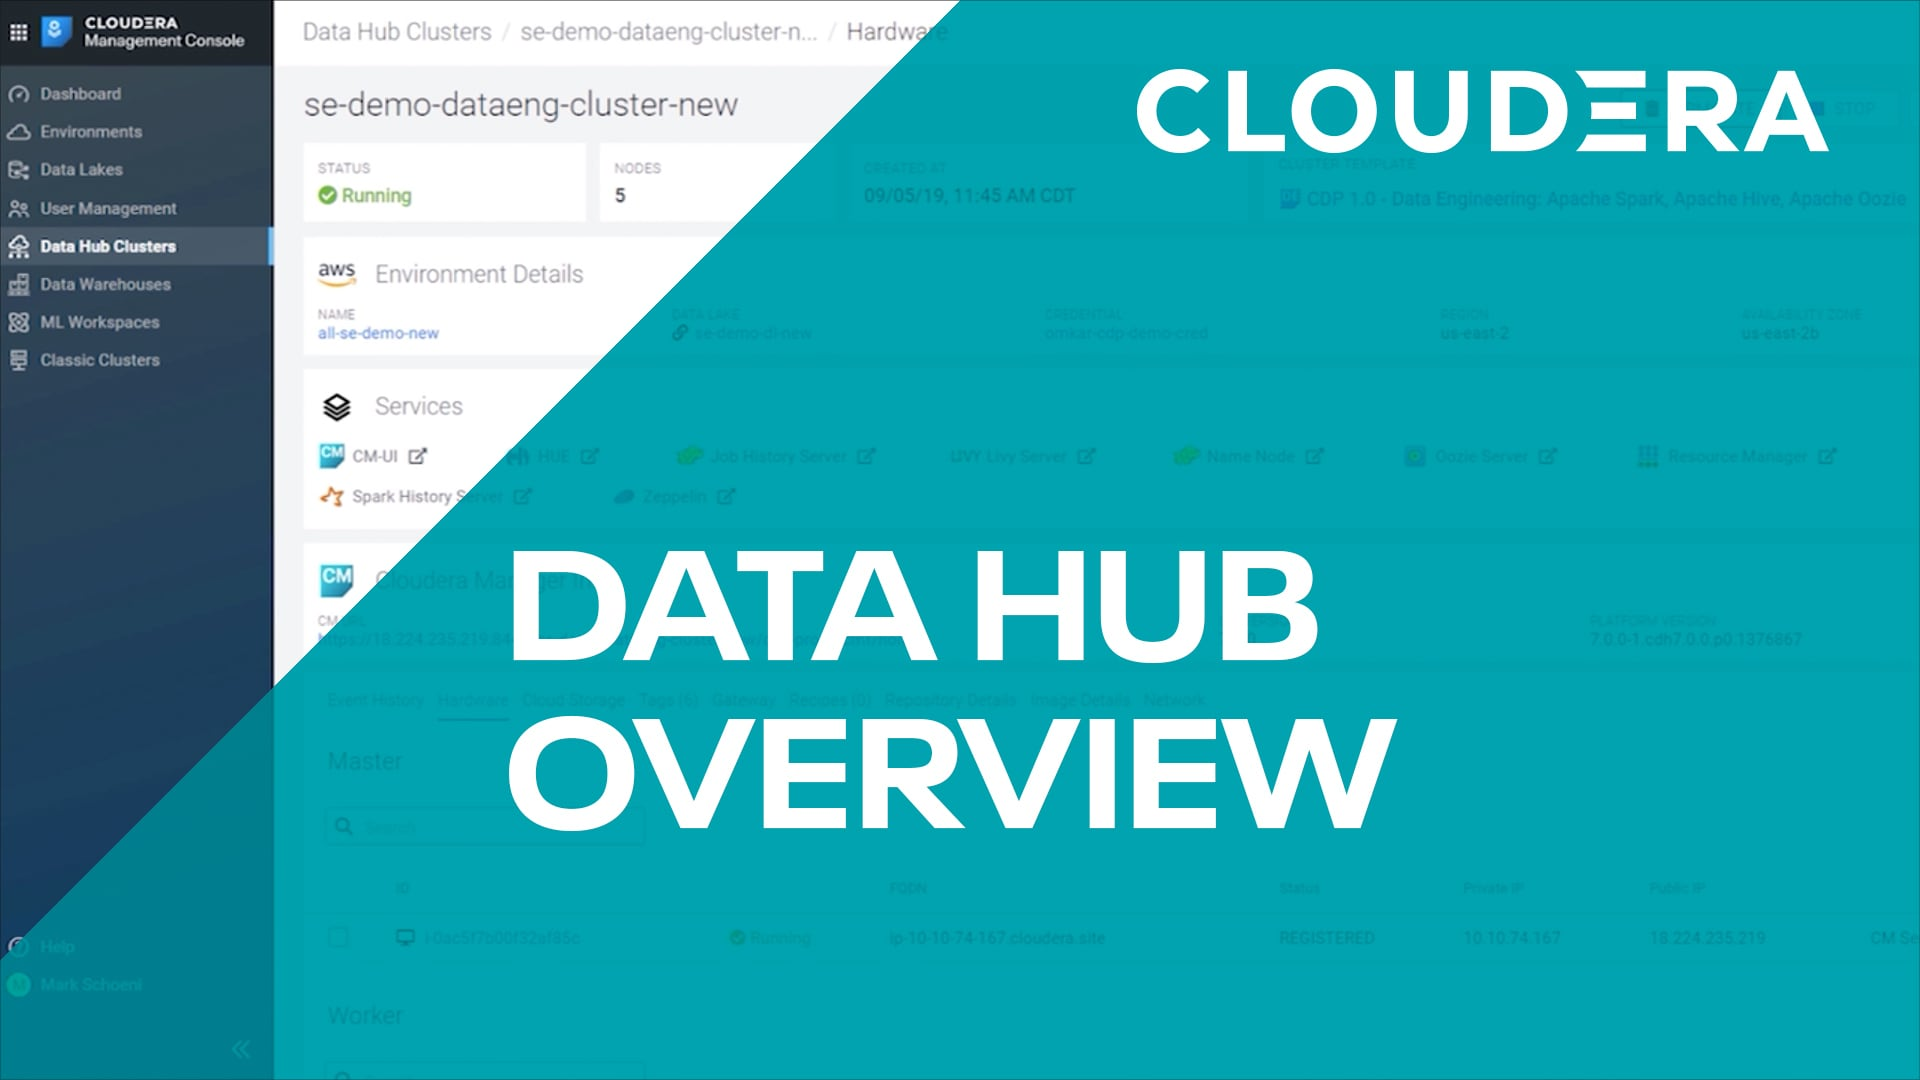 Cloudera Data Hub - What You Should Know